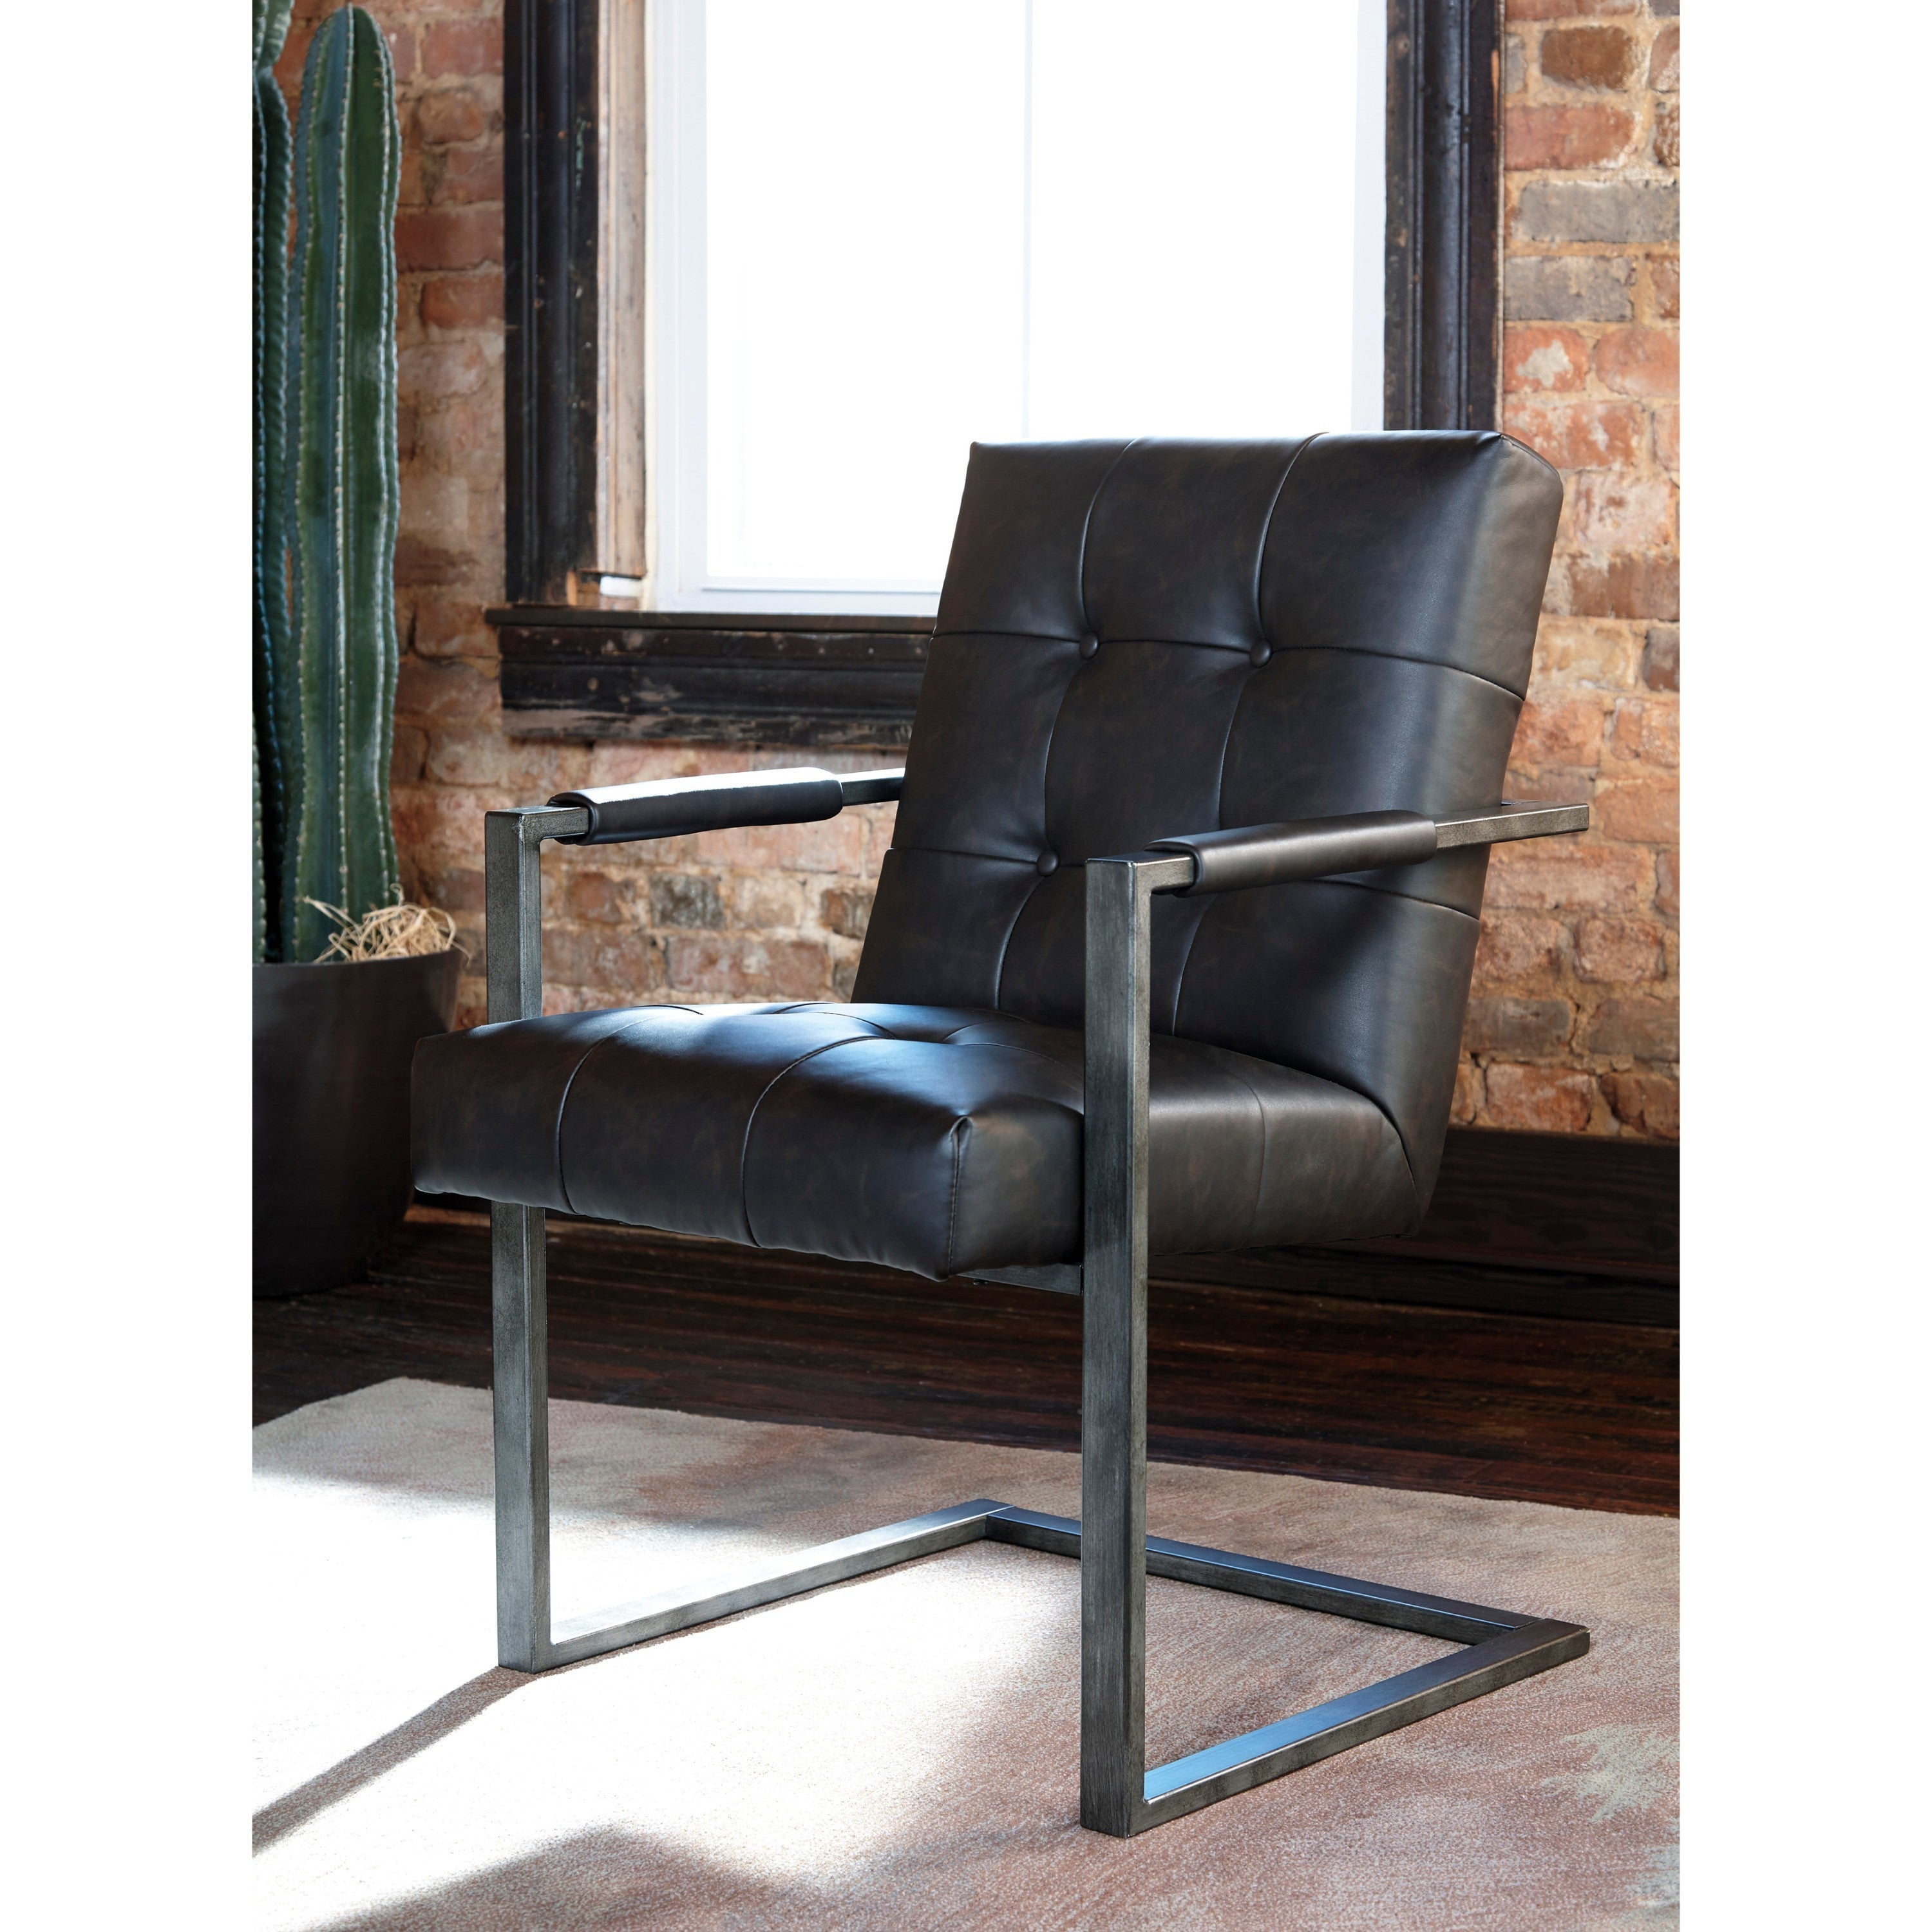 Ashley Starmore Brown Home Office Desk Chair (Set of 2) (...